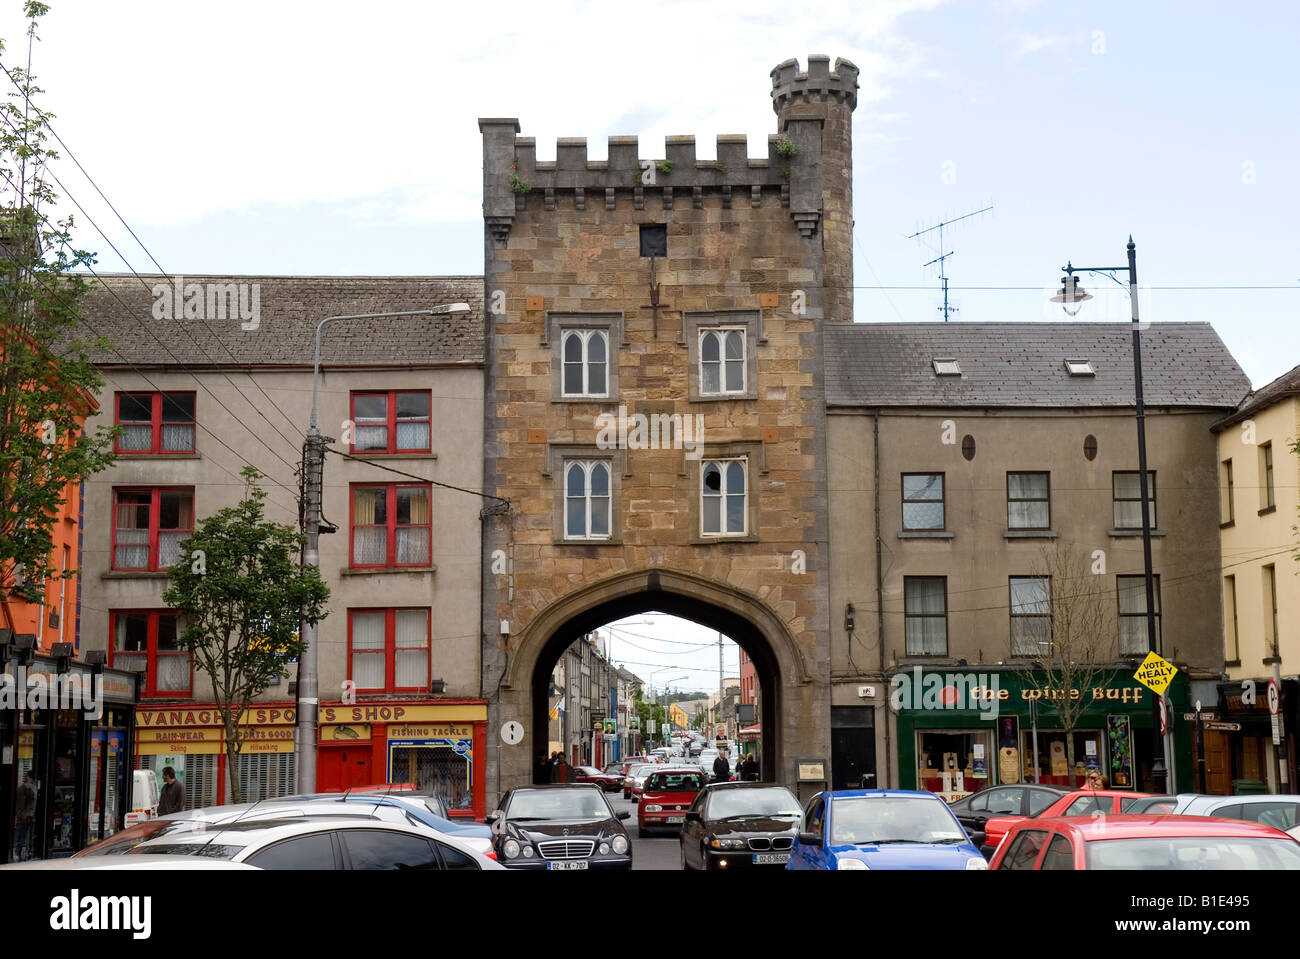 West Gate Clonmel Tipperary Ireland Stock Photo Royalty